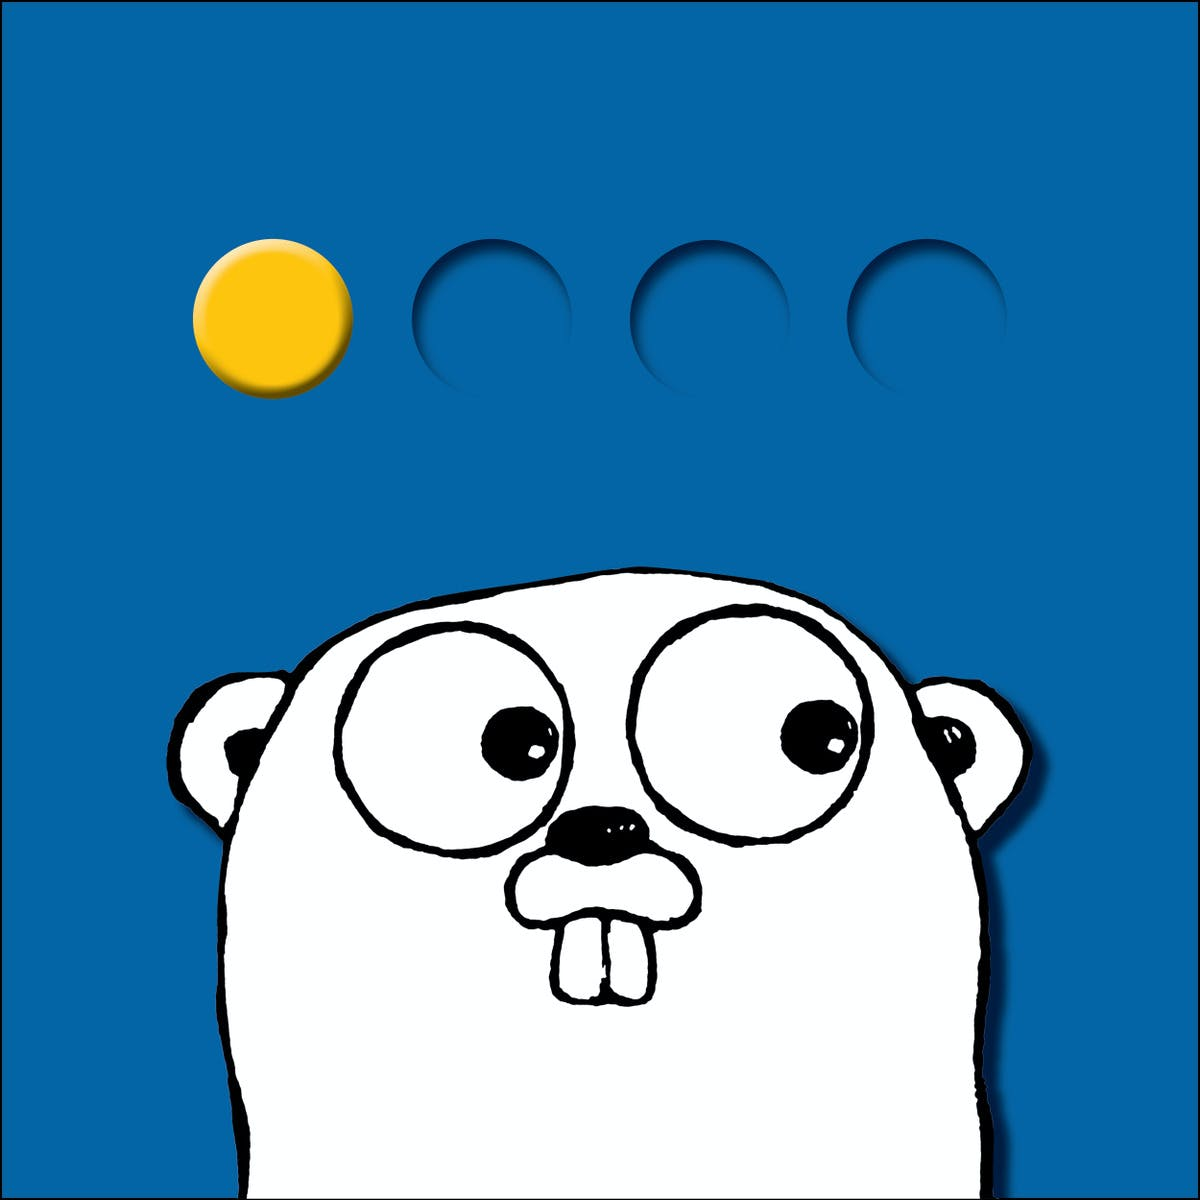 Getting Started with Go